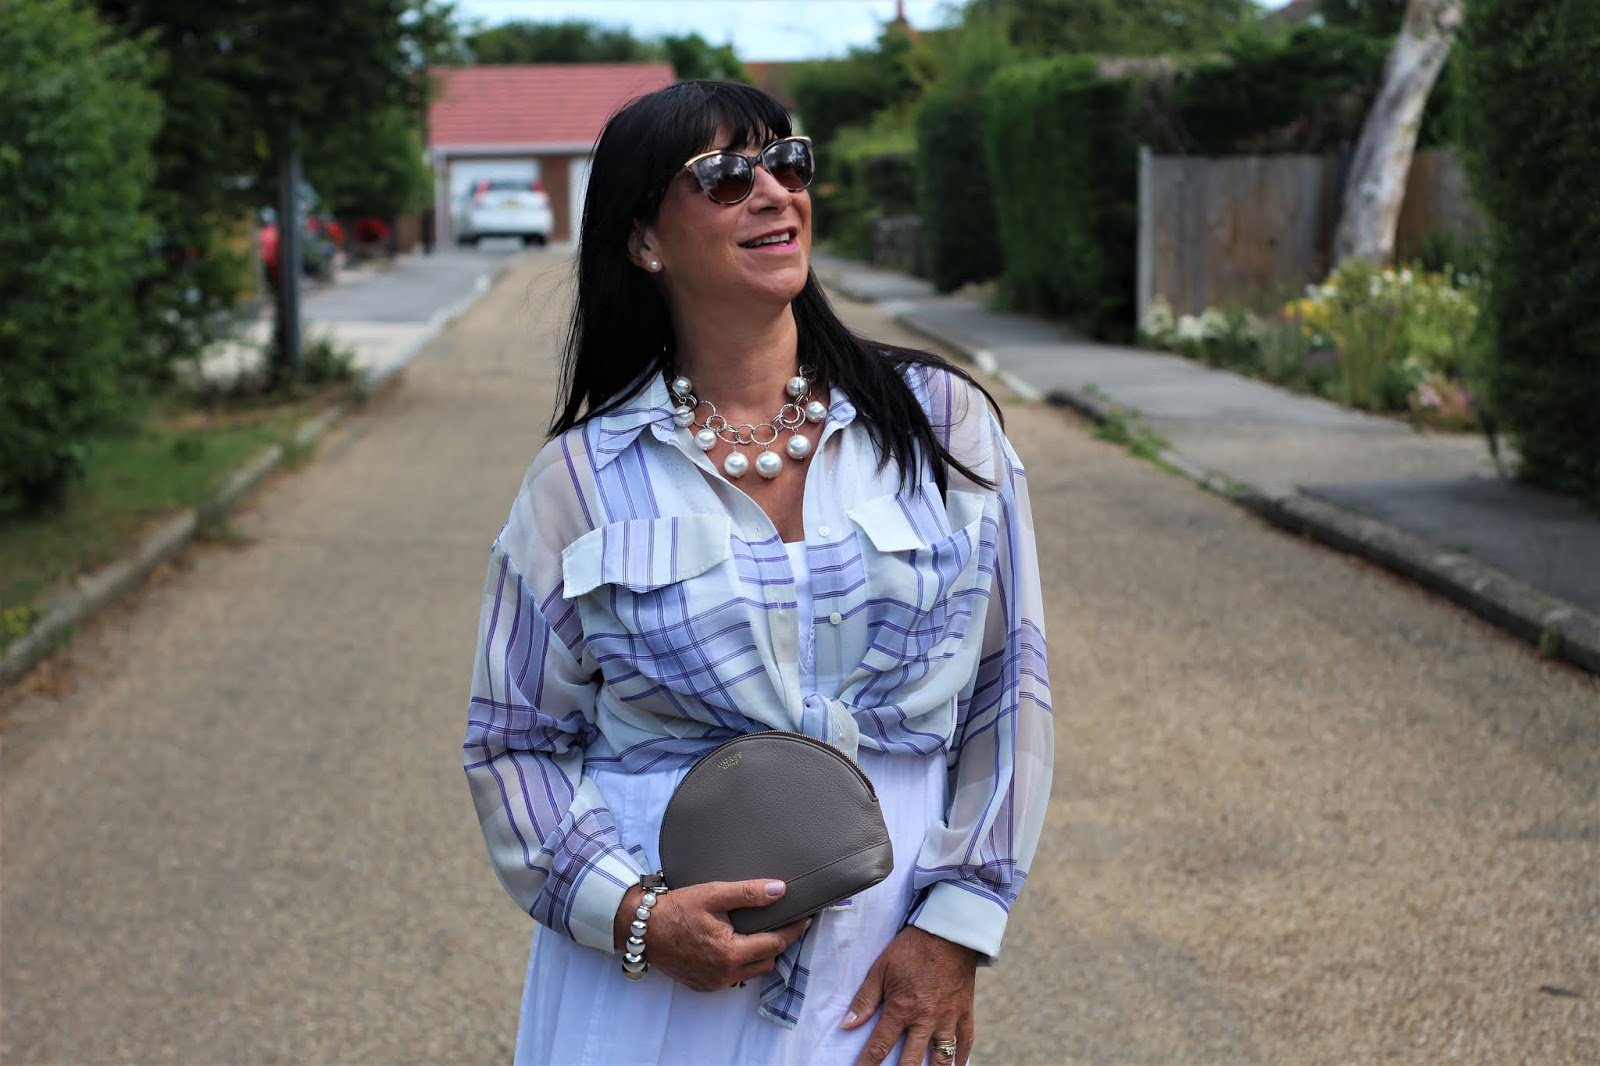 Over 50s blogger Jacqui Berry from Mummabstylish in the Check Me Out challenge, wearing a check blouse over a dress